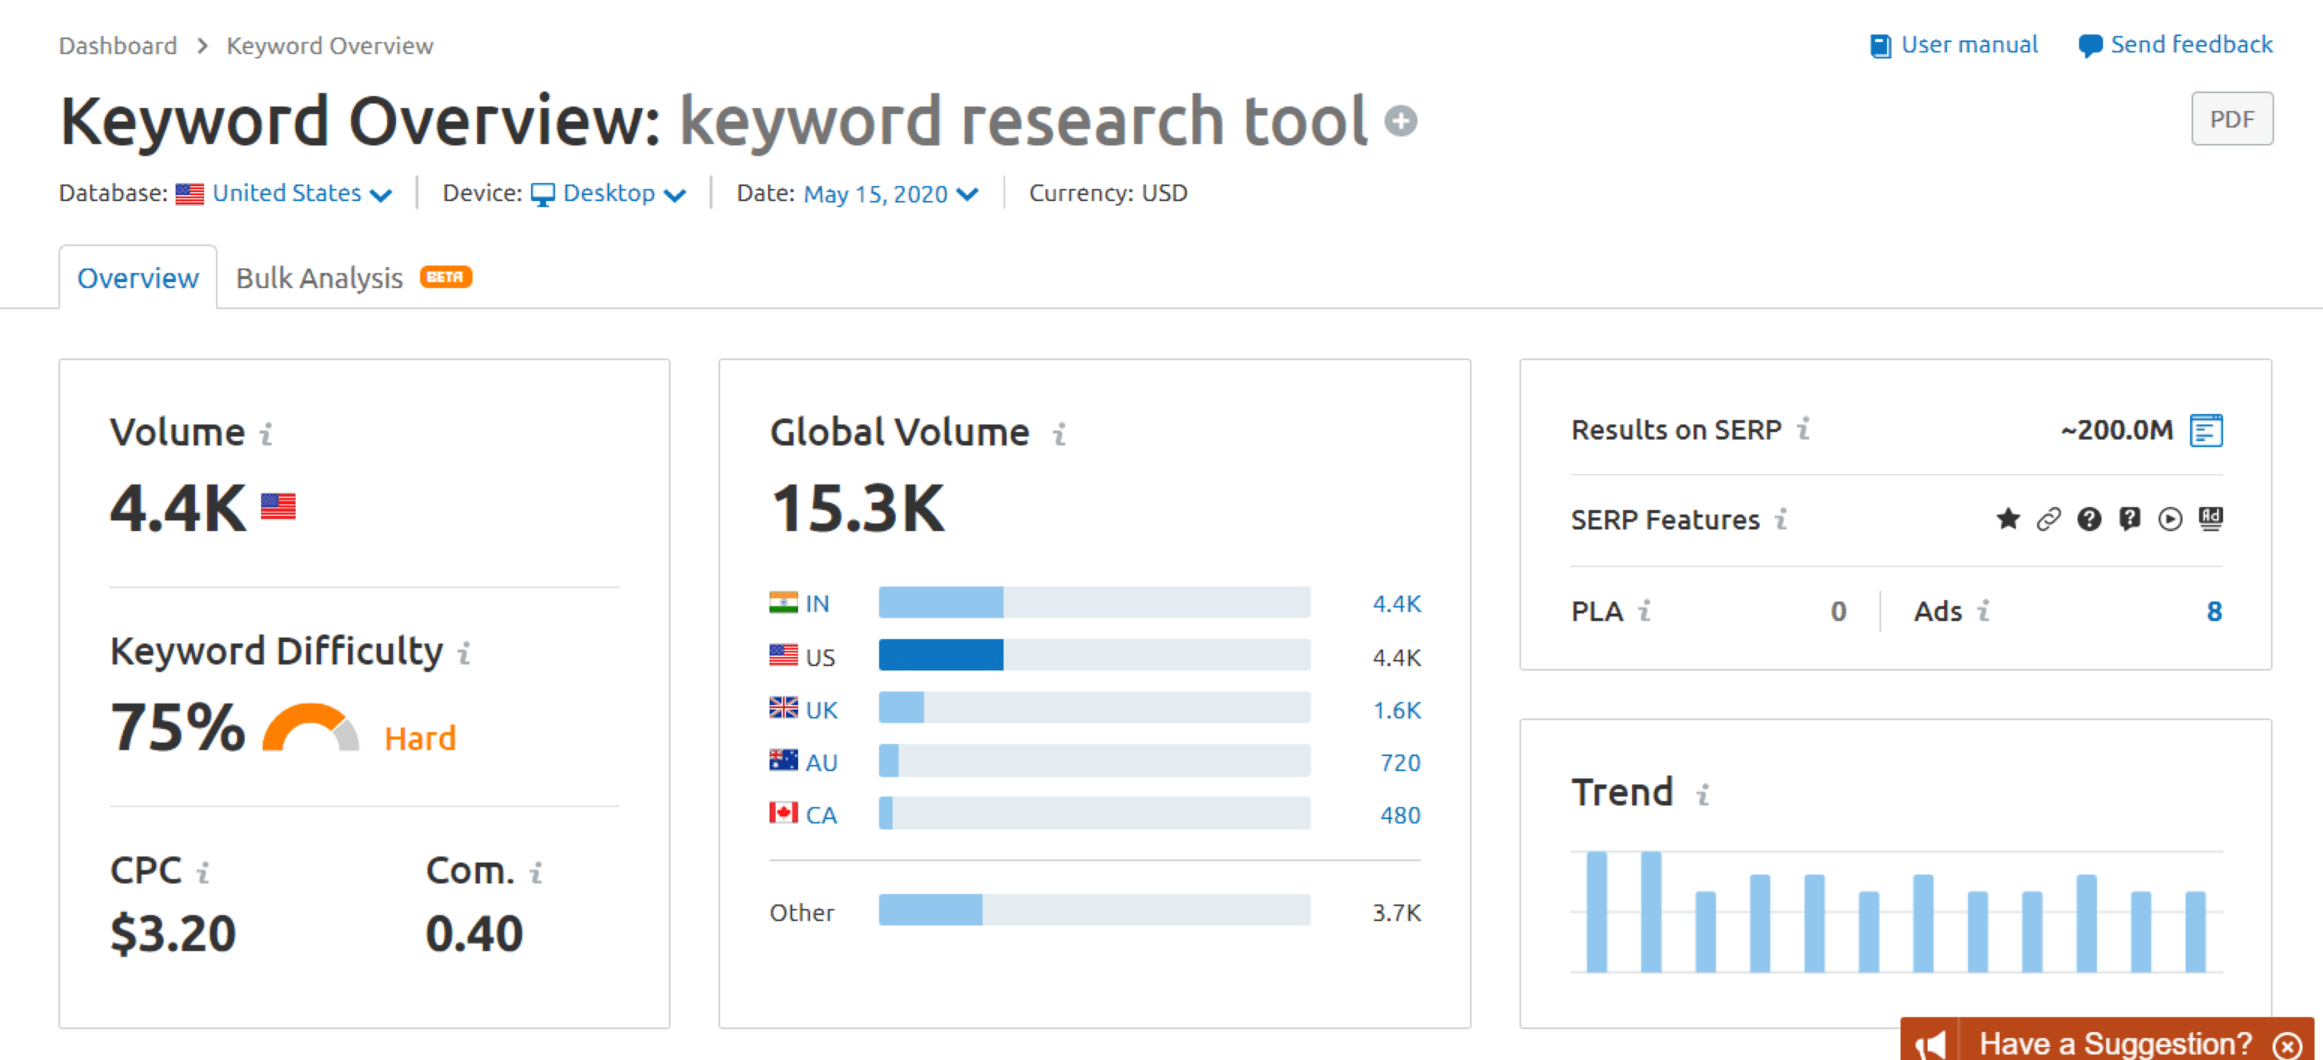 SEMrush Tools show search volume, keyword ranking difficulty, cost per click (CPC), global volume, and search trends